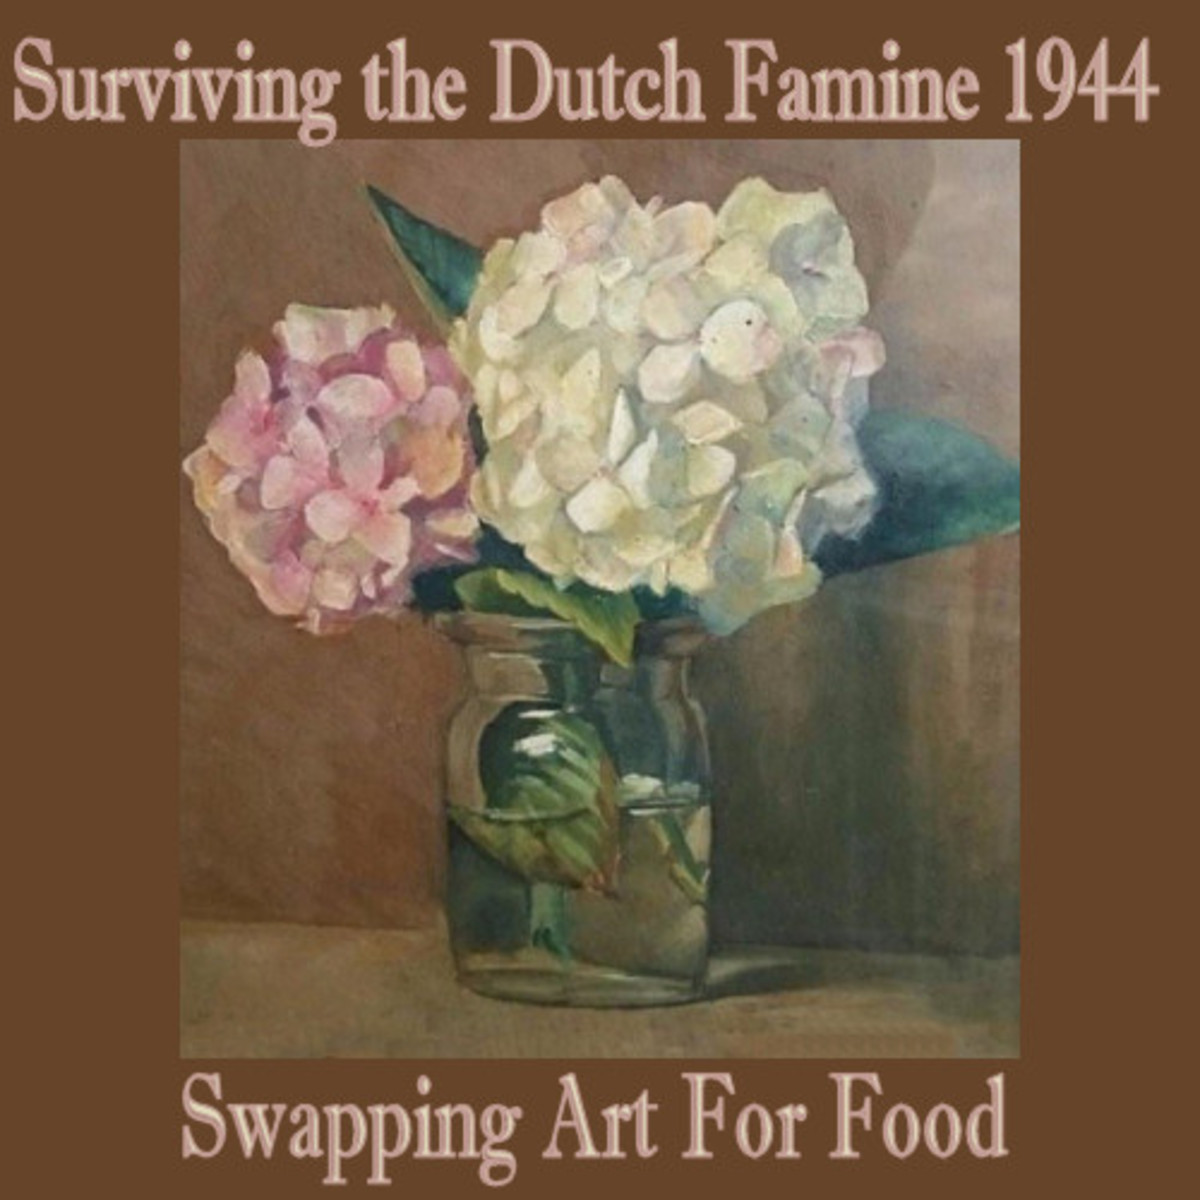 Love story of Mom and Dad - surviving the Dutch Famine 1944